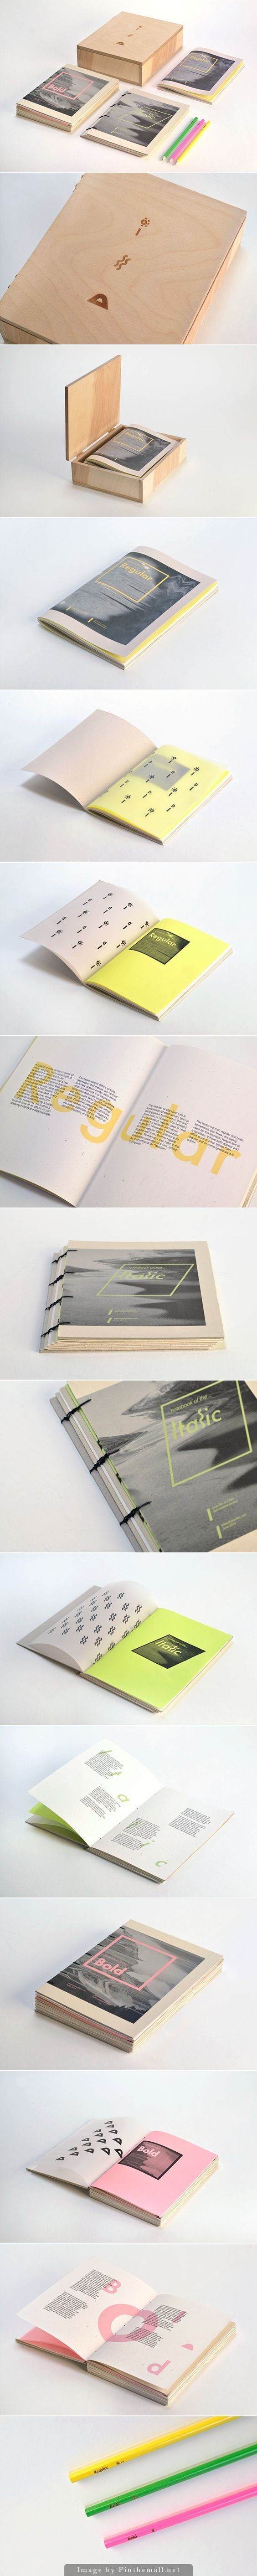 Font Book by Pin-Ju Chen: